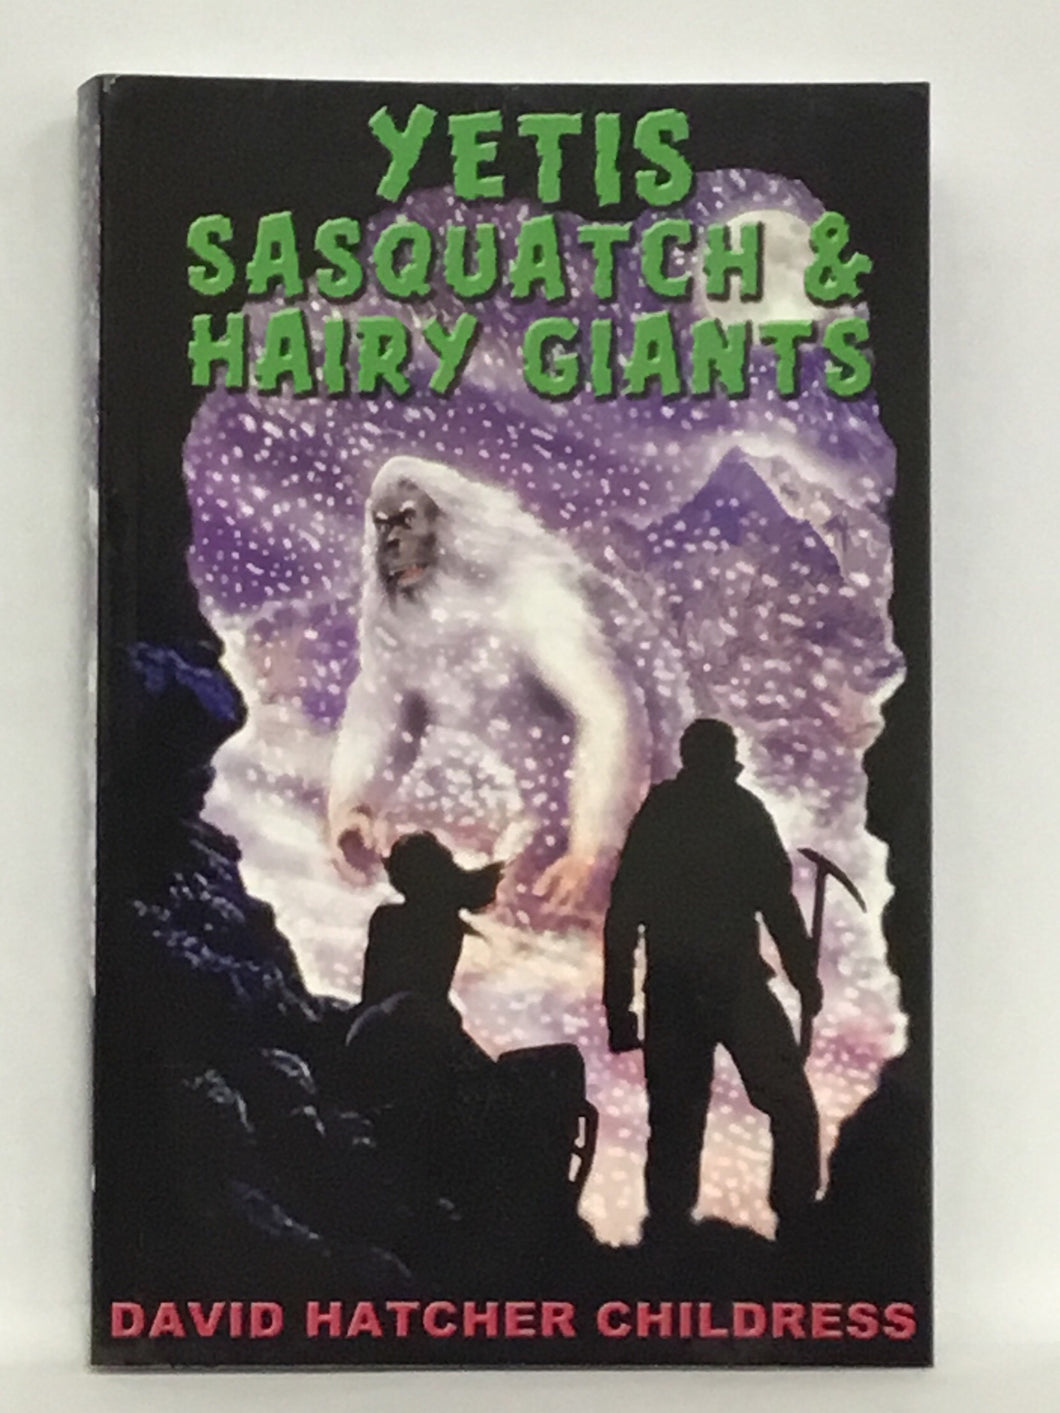 Yetis Sasquatch & Hairy Giants